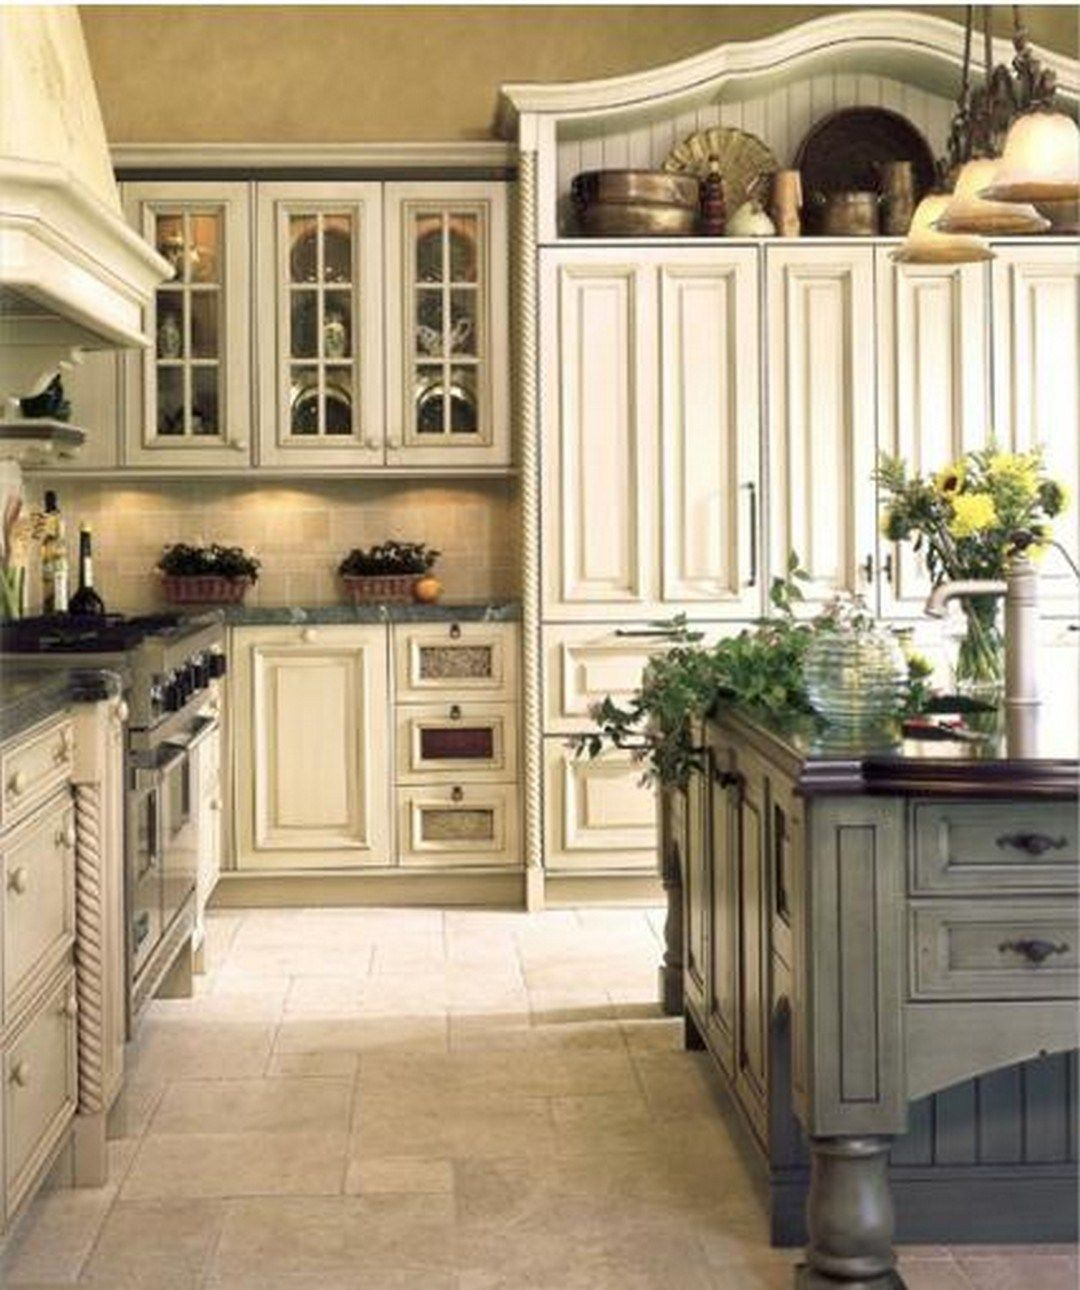 99 French Country Kitchen Modern Design Ideas (30) | For the Home ...